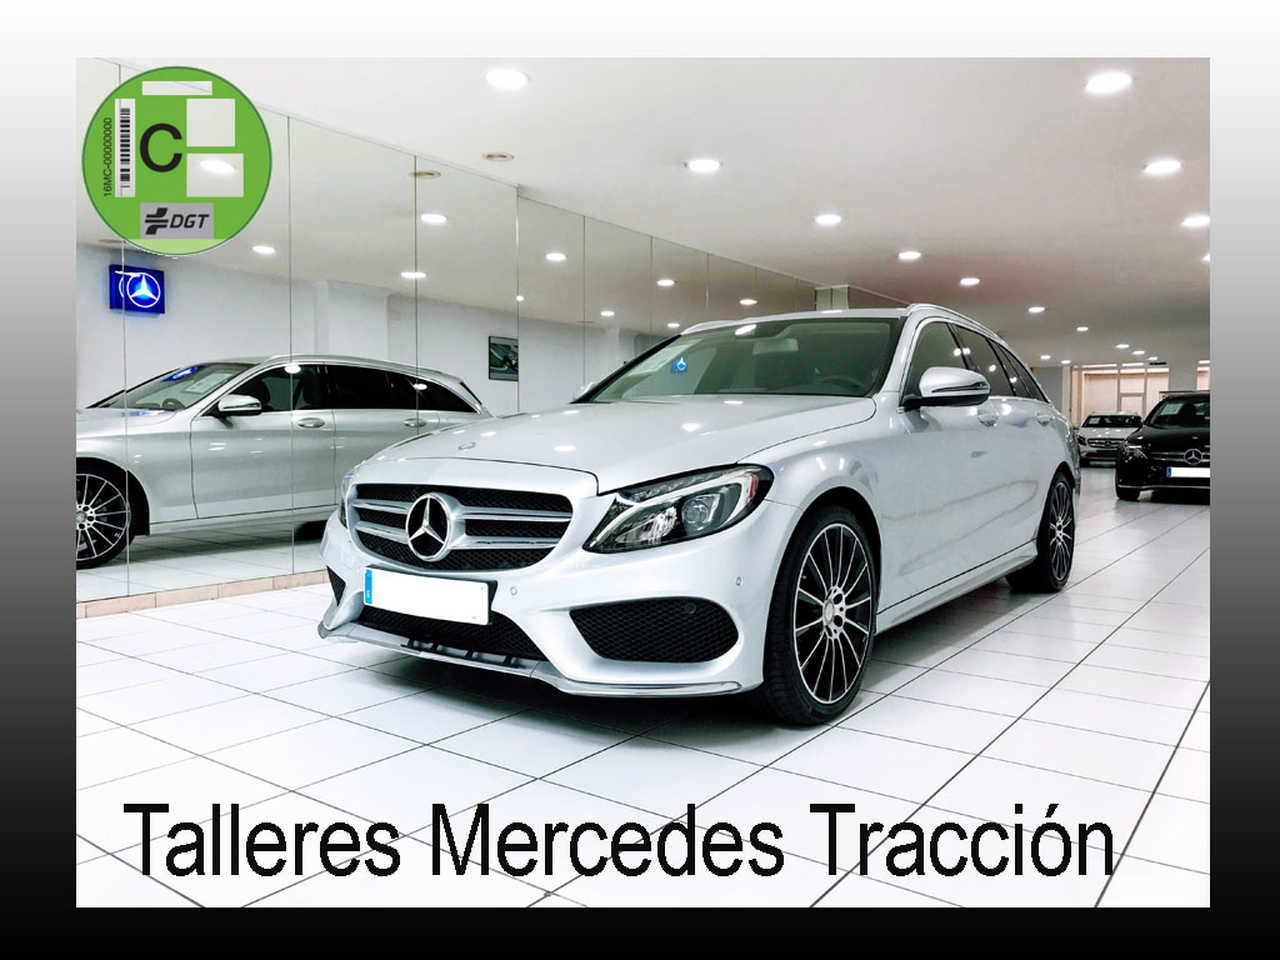 "Mercedes Clase C 220 d Estate/ 7G Plus/Comand/Llanta 19""/13.000 km   - Foto 1"